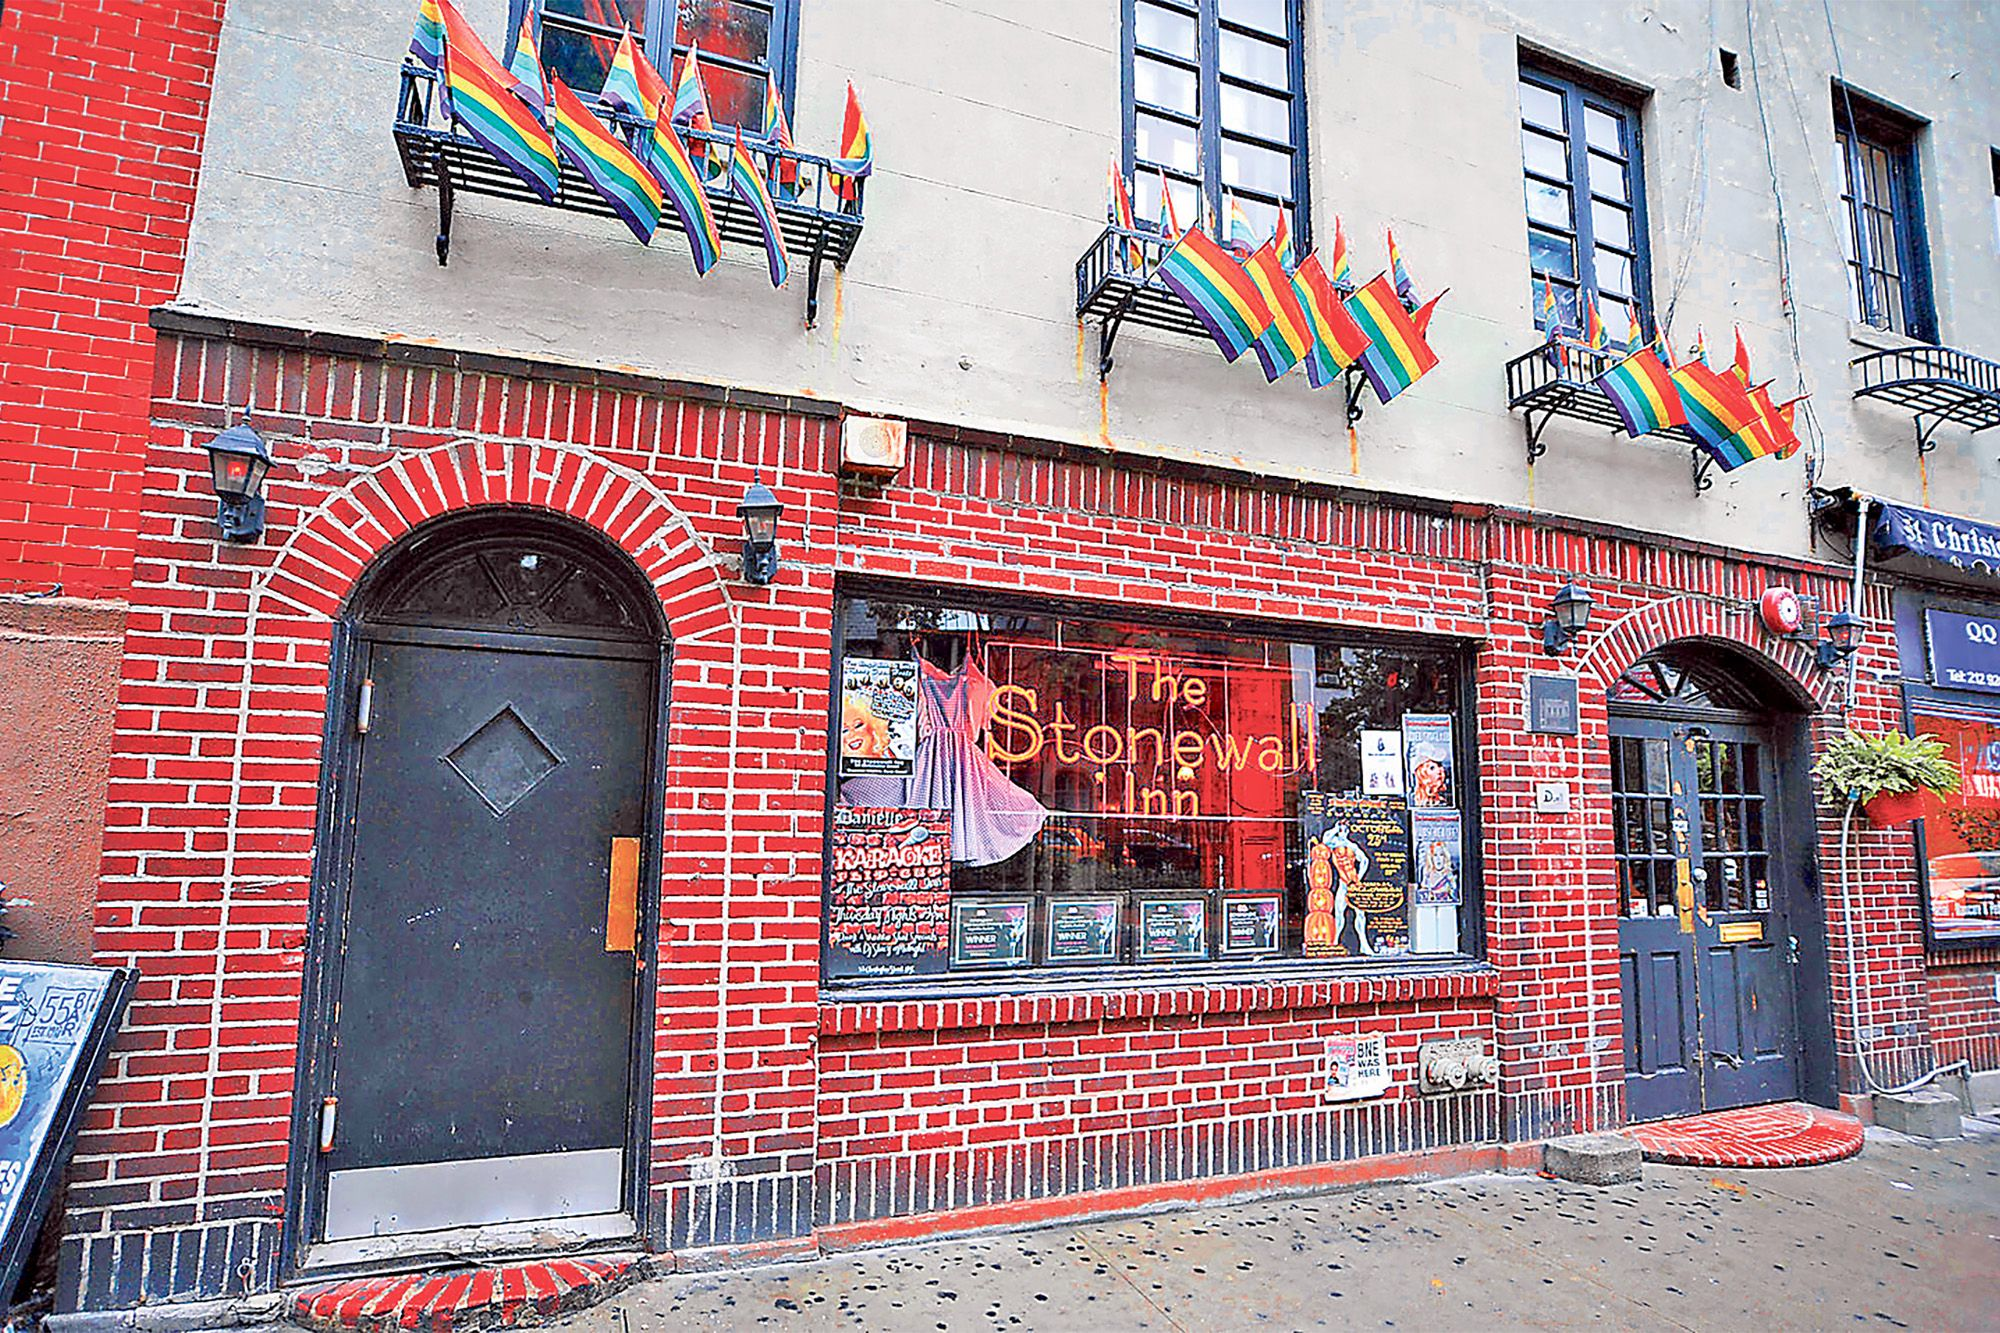 The exterior of the Stonewall Inn